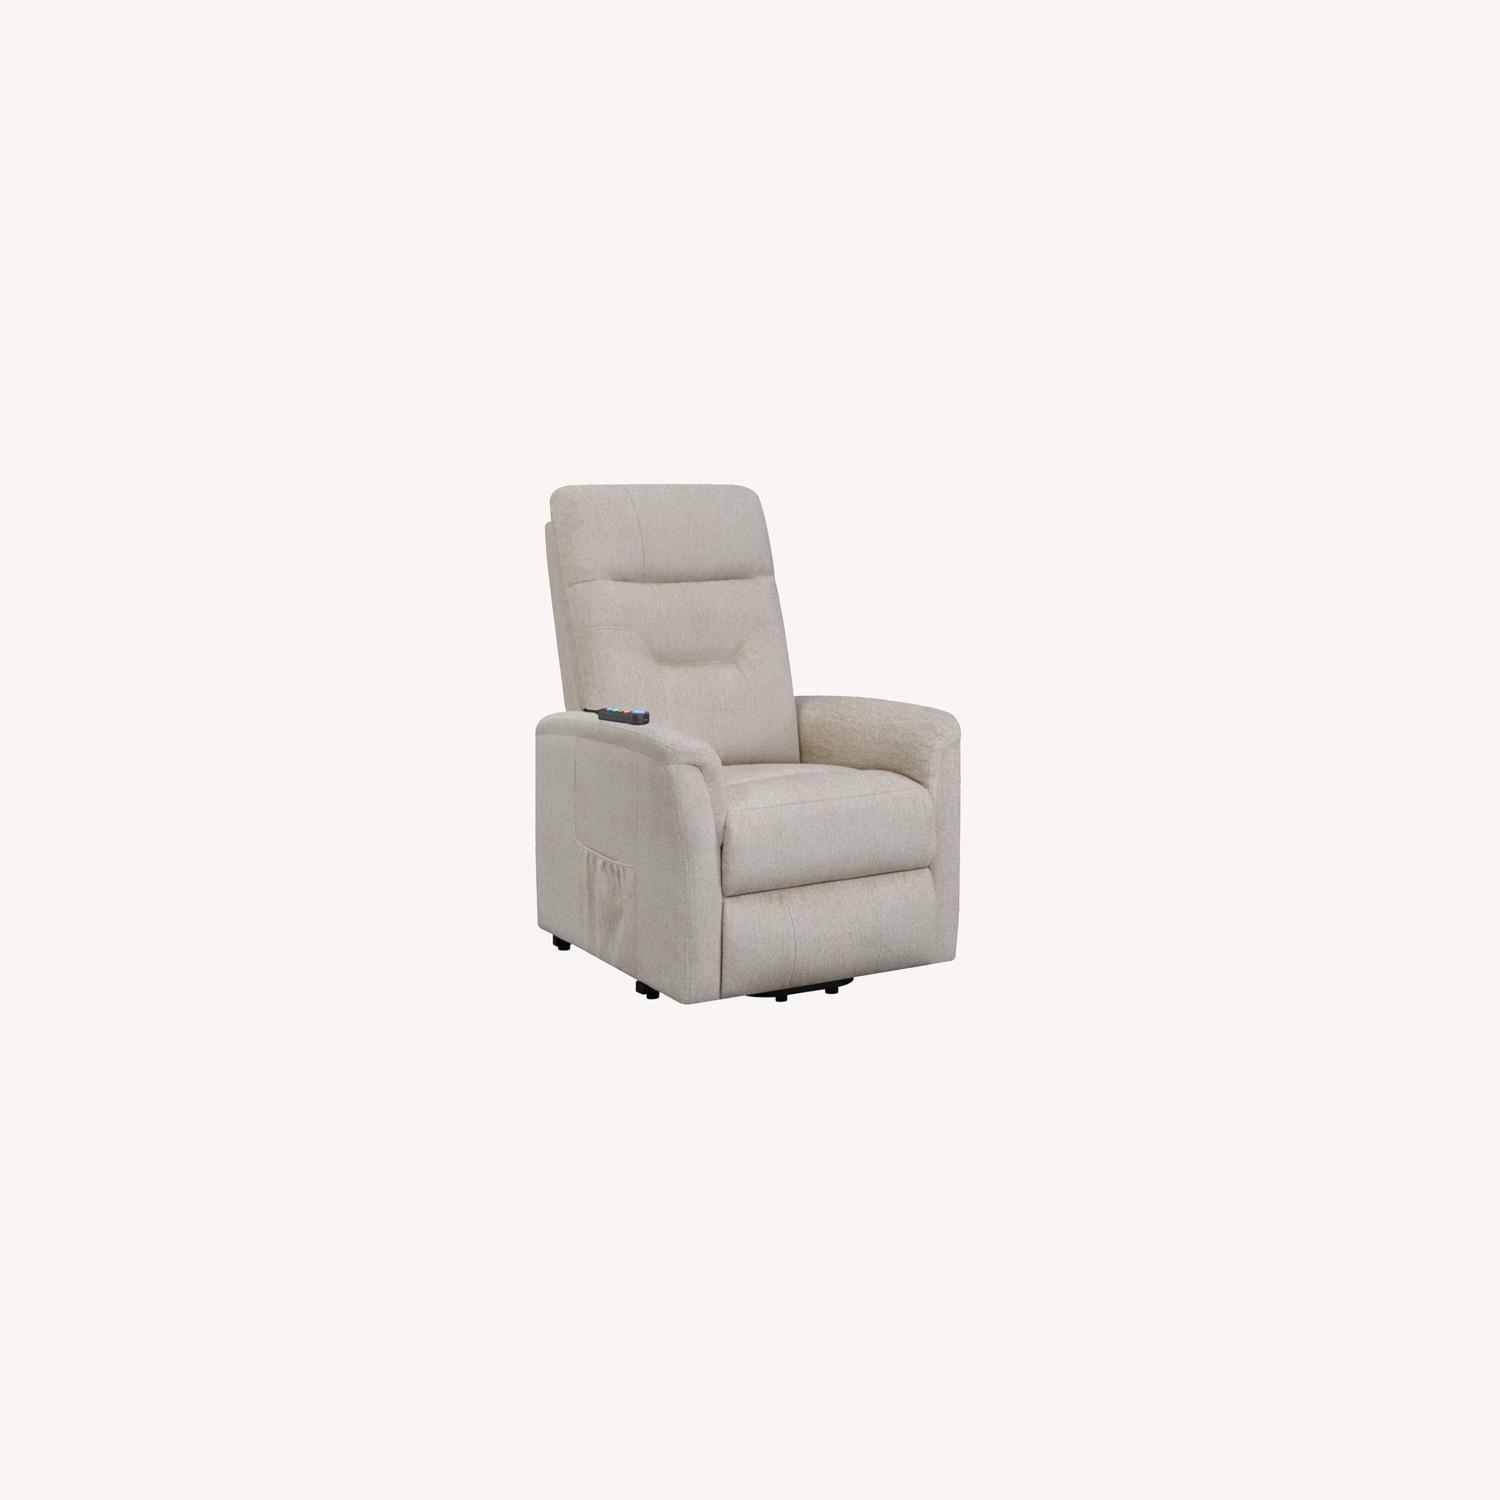 Power Lift Massage Chair In Beige Fabric - image-10